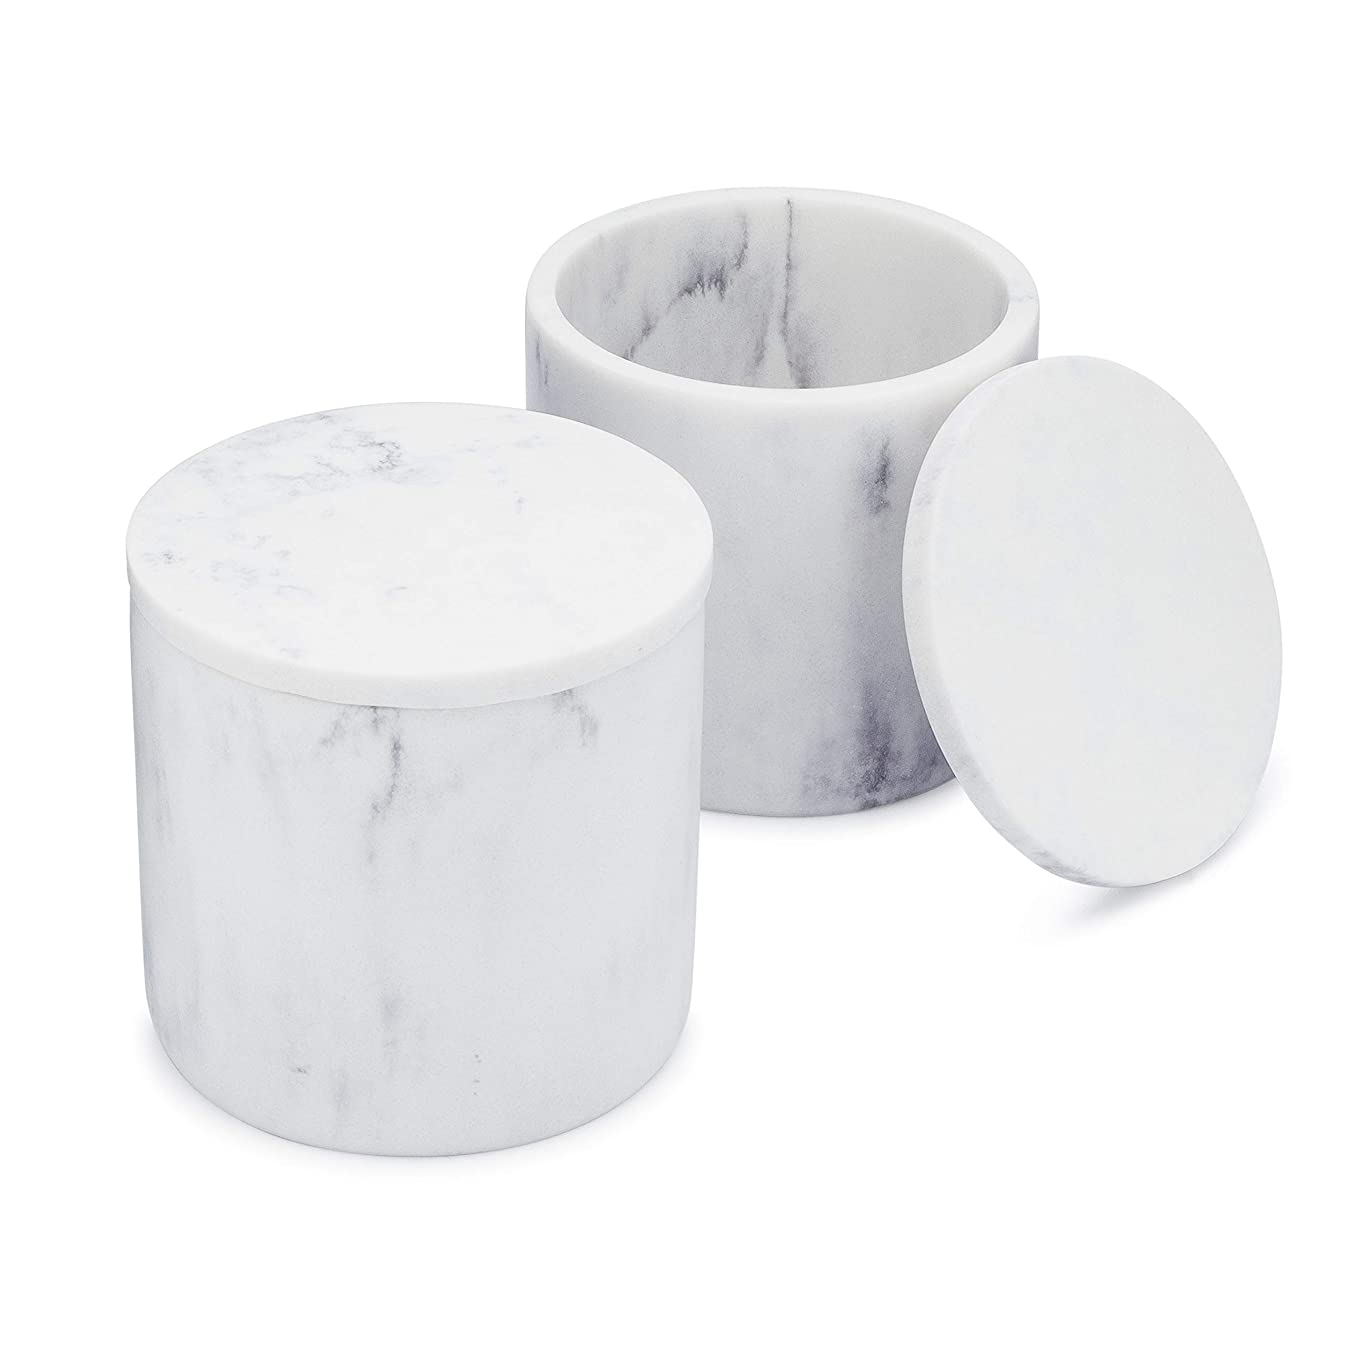 EssentraHome White Jar with Lid for Vanity Countertops, Container from Blanc Collection. Set of 2.